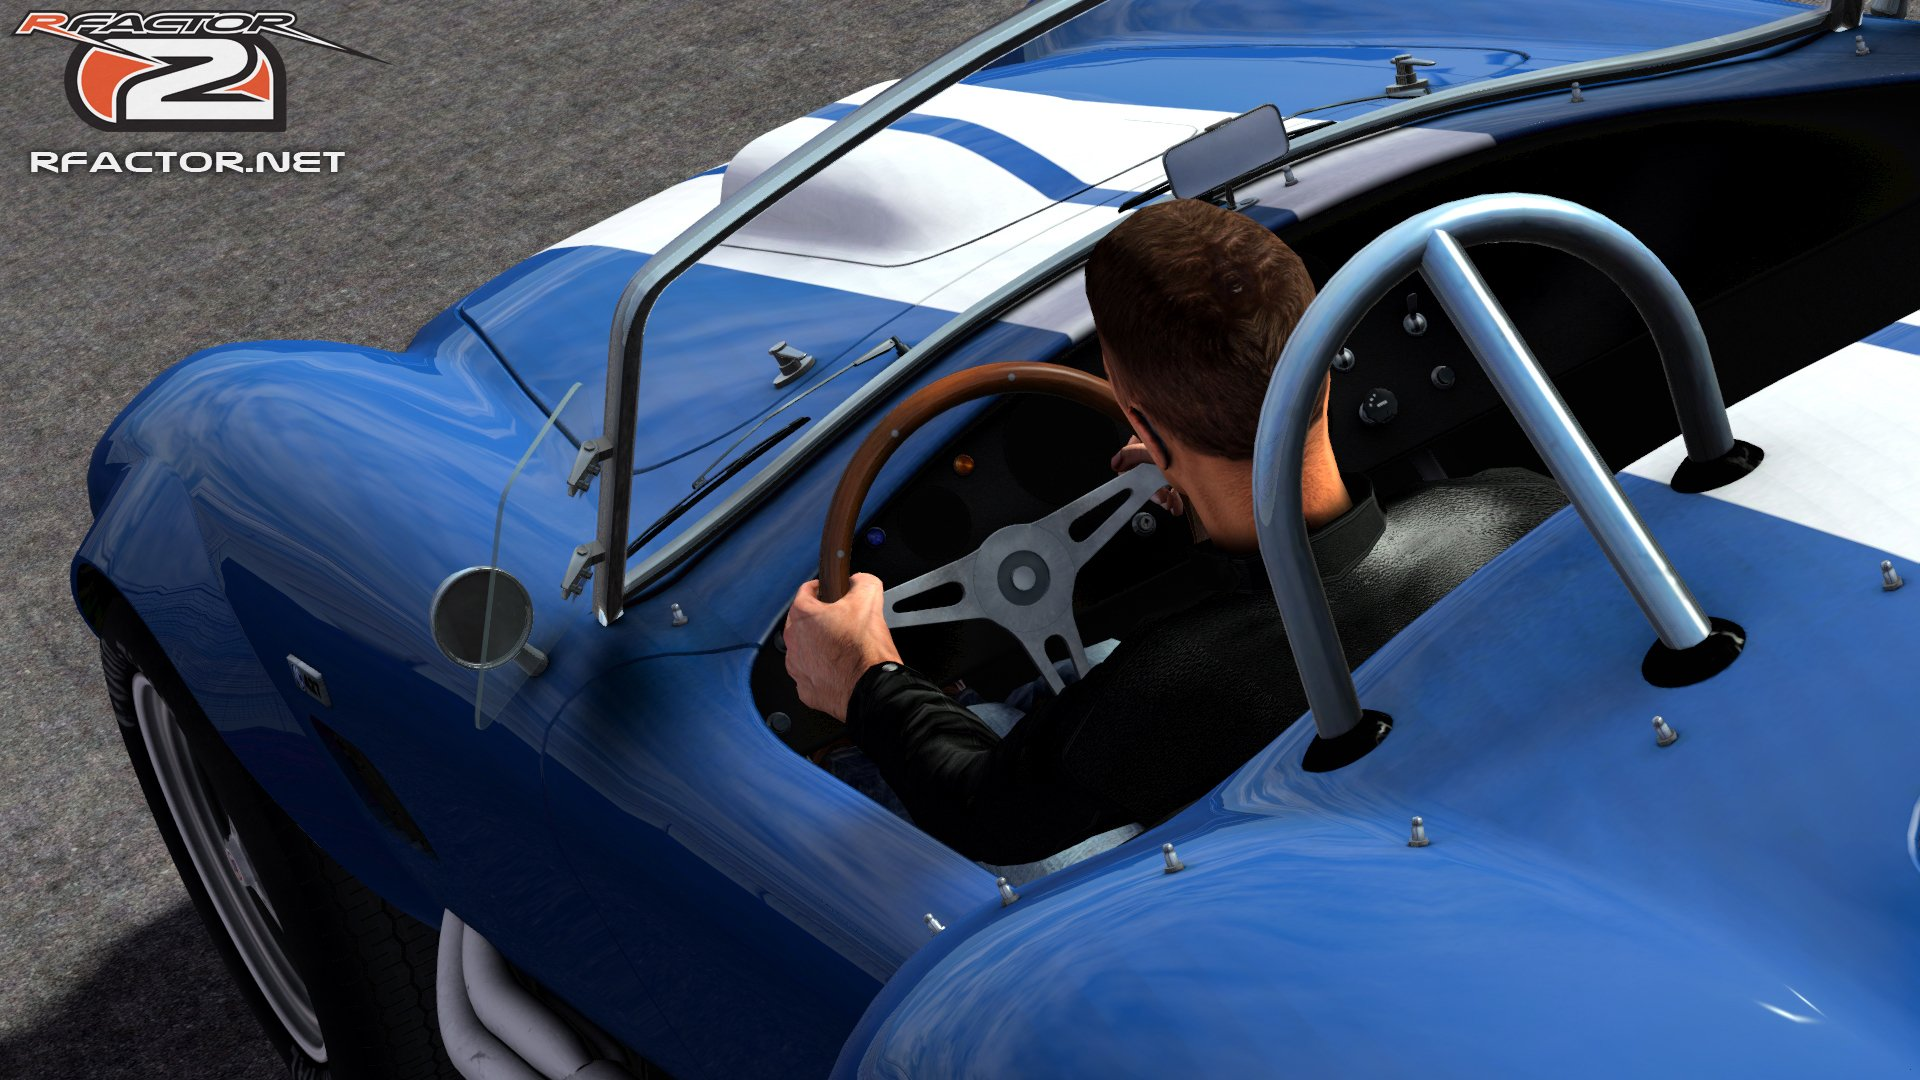 Shelby Cobra Preview Released for rFactor 2 - Inside Sim Racing